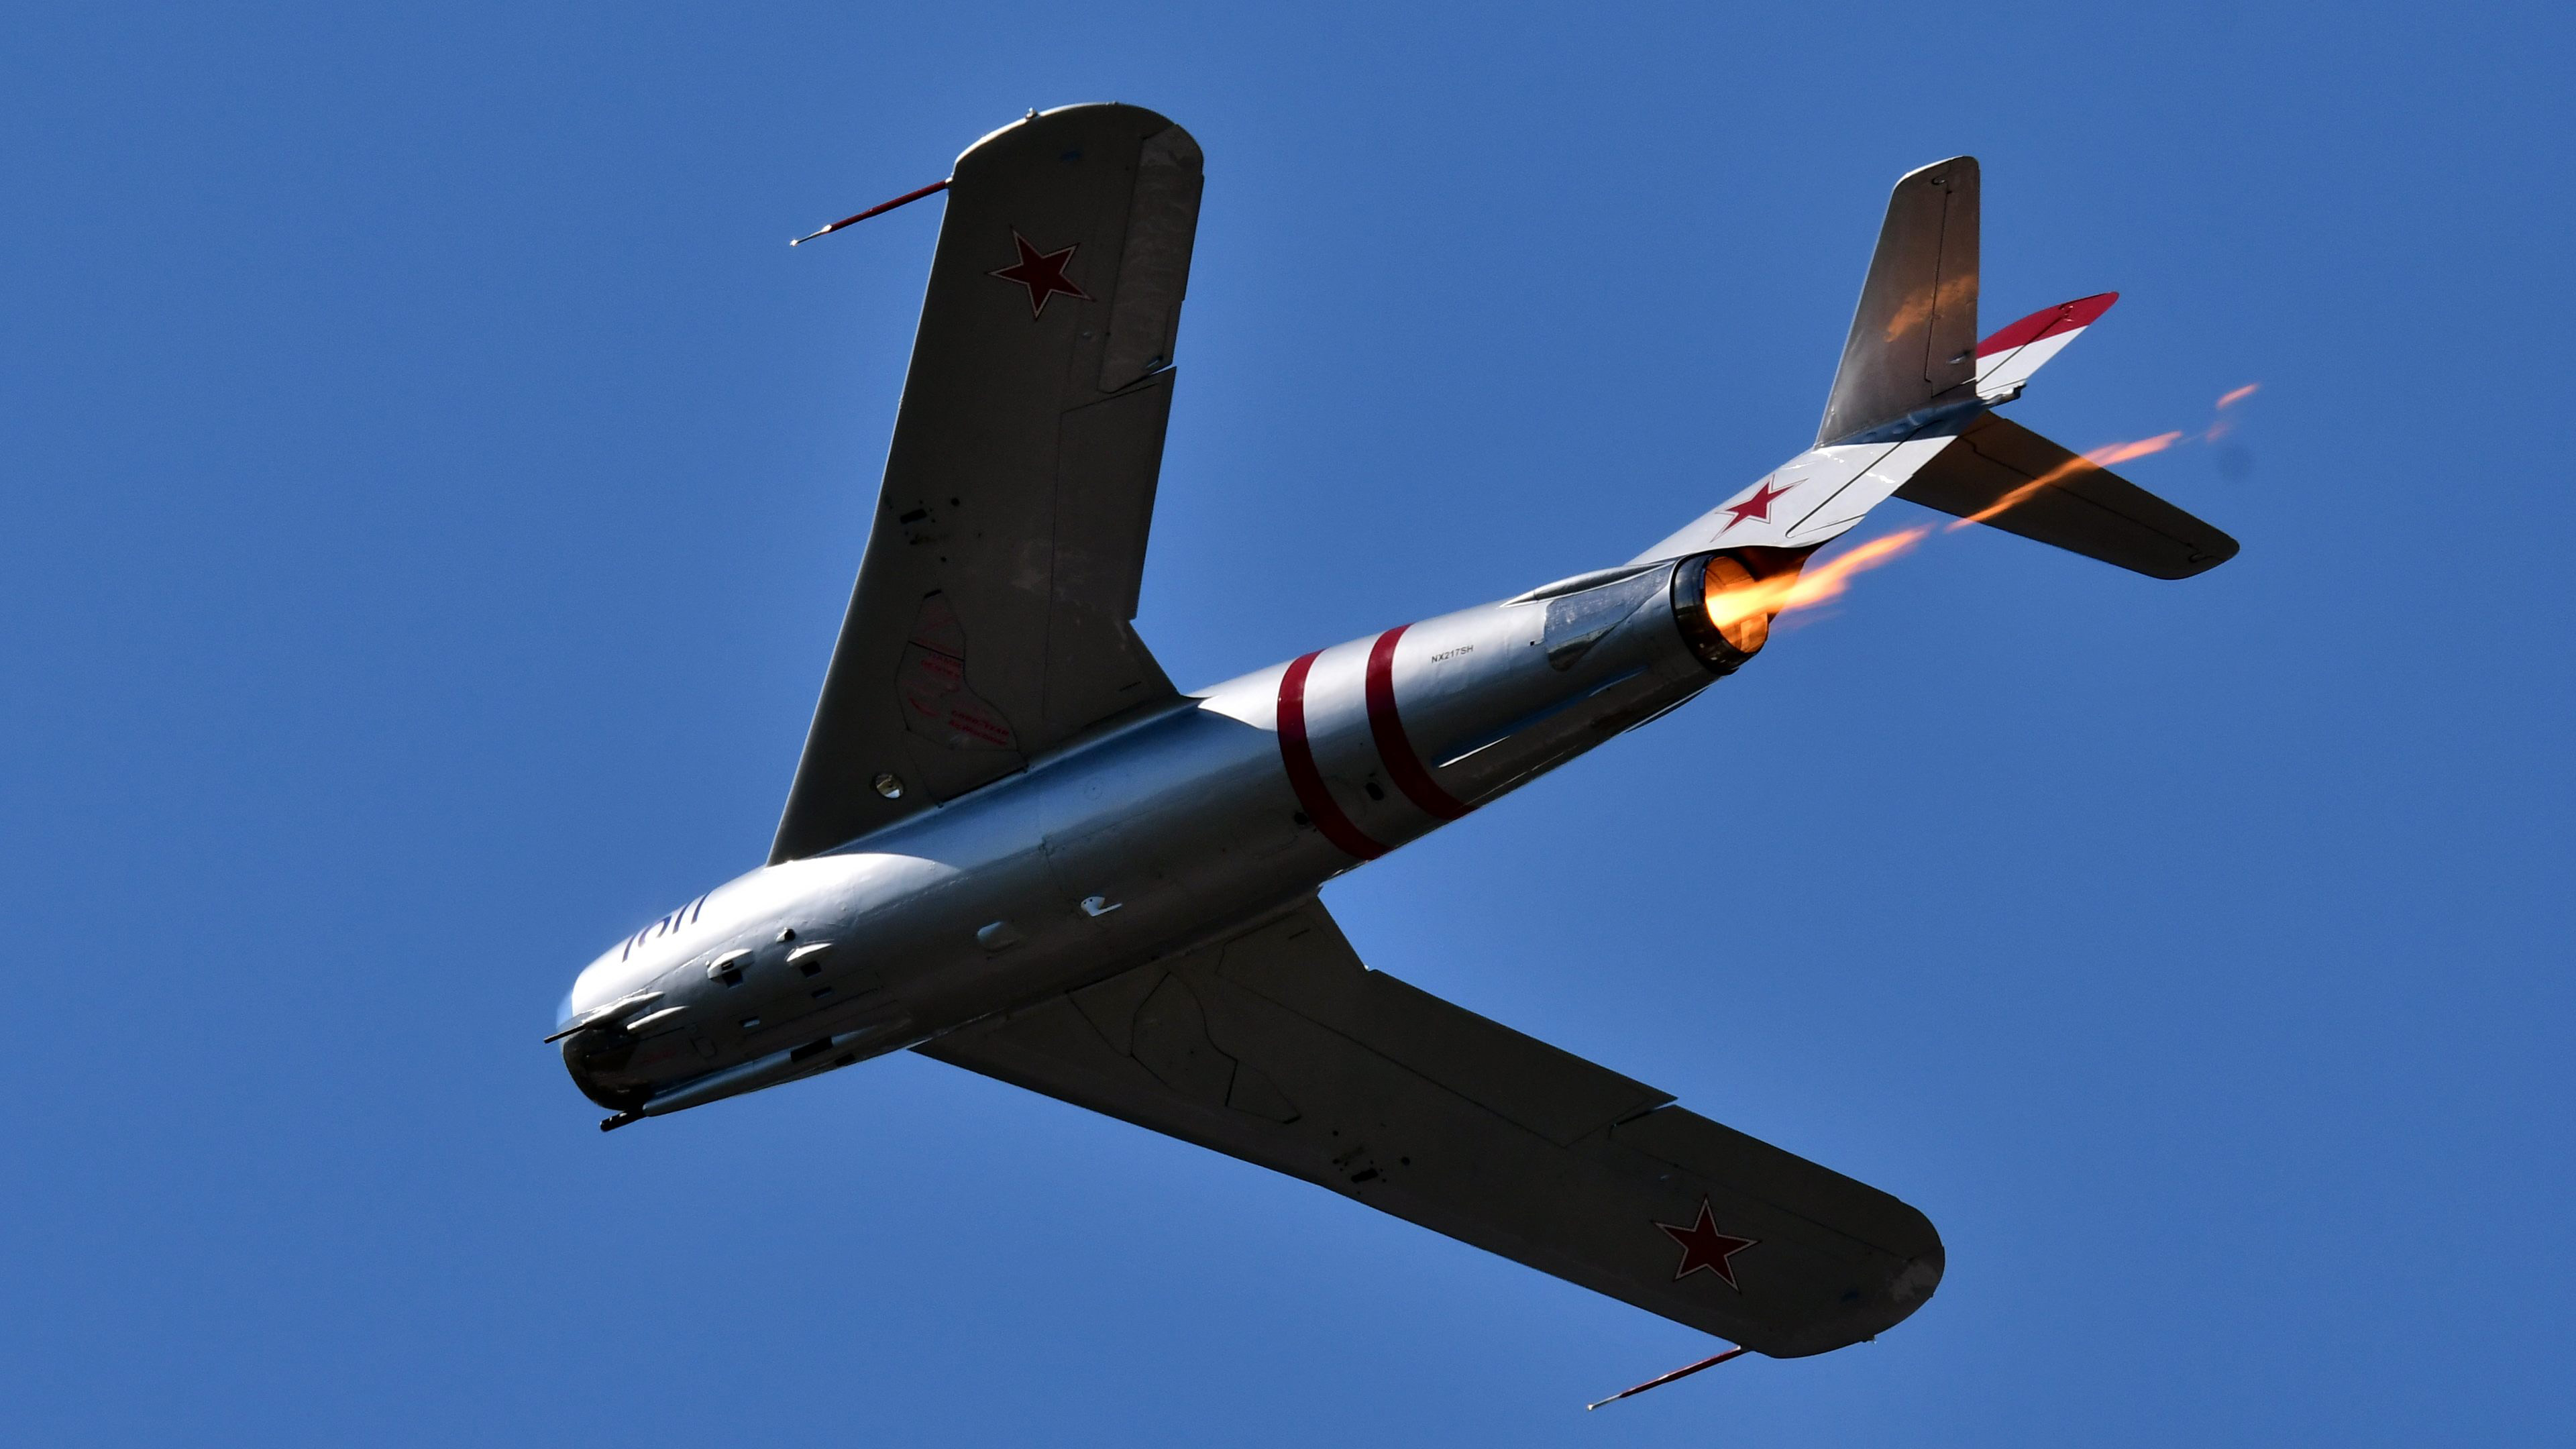 Flames from the afterburner trail behind Randy Ball's MiG-17F during a performance at Sun 'n Fun. Photo by Mike Collins.